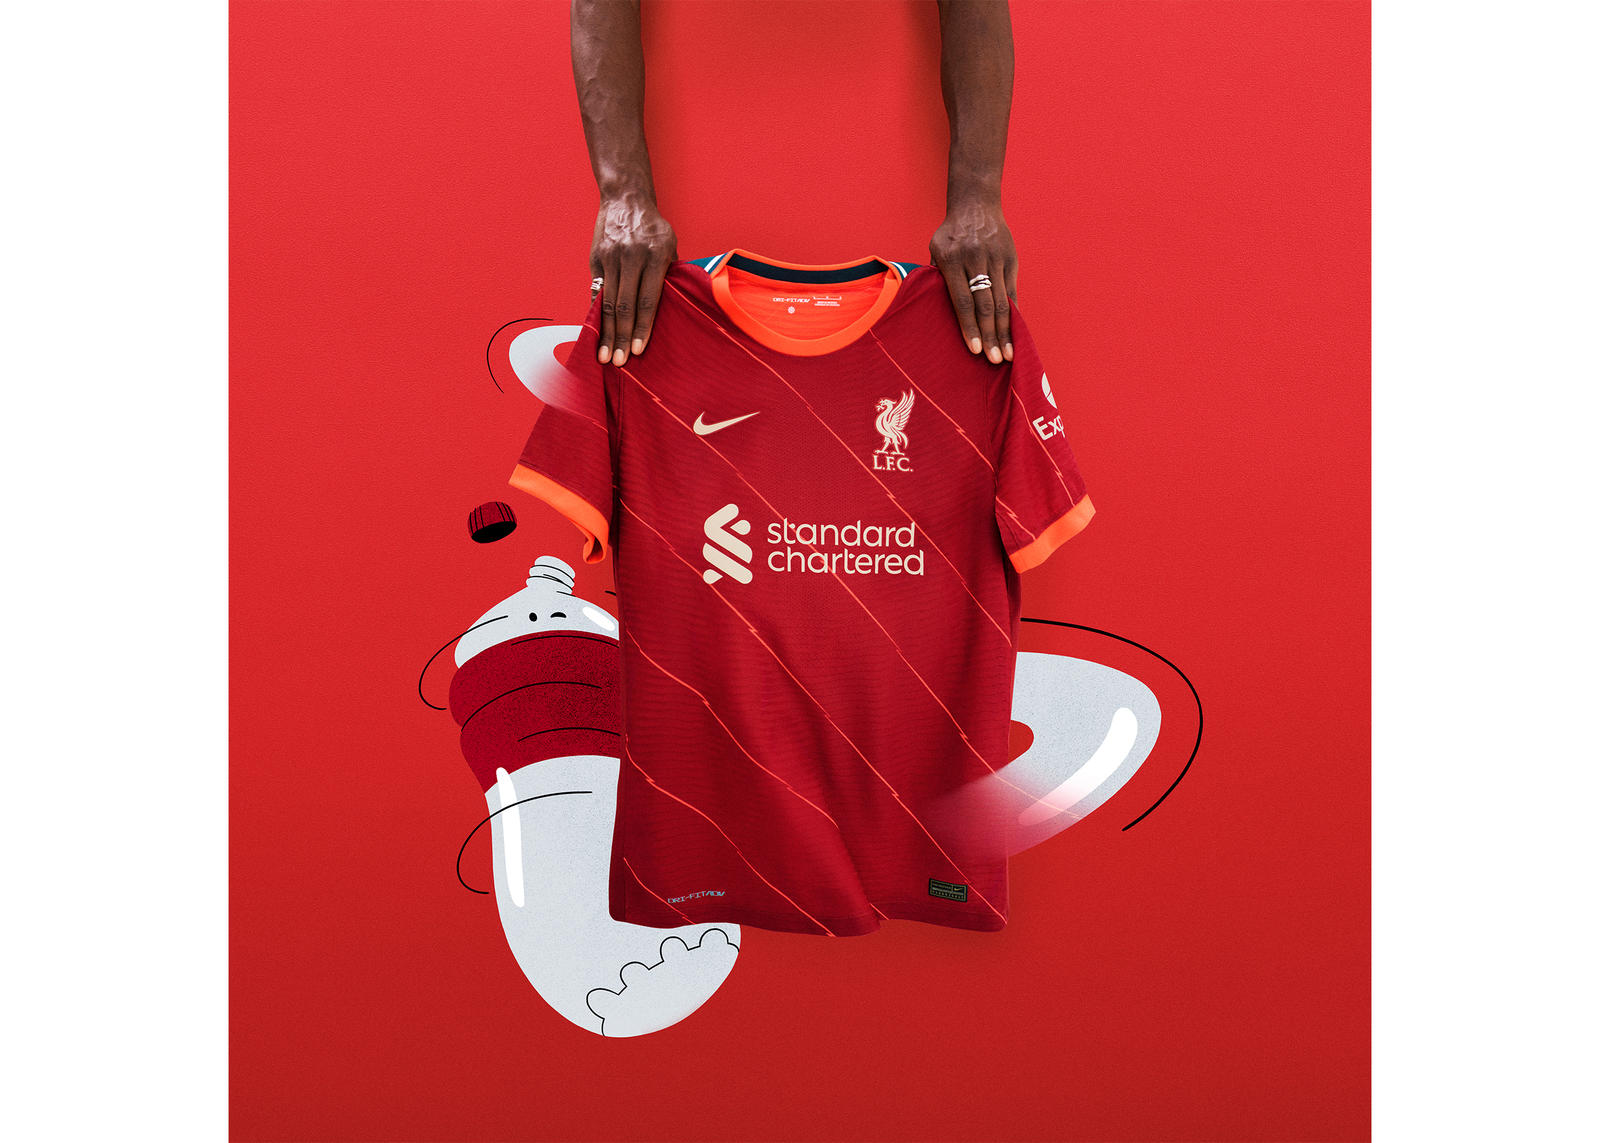 liverpool-fc-2021-22-home-kit-official-images-release-date